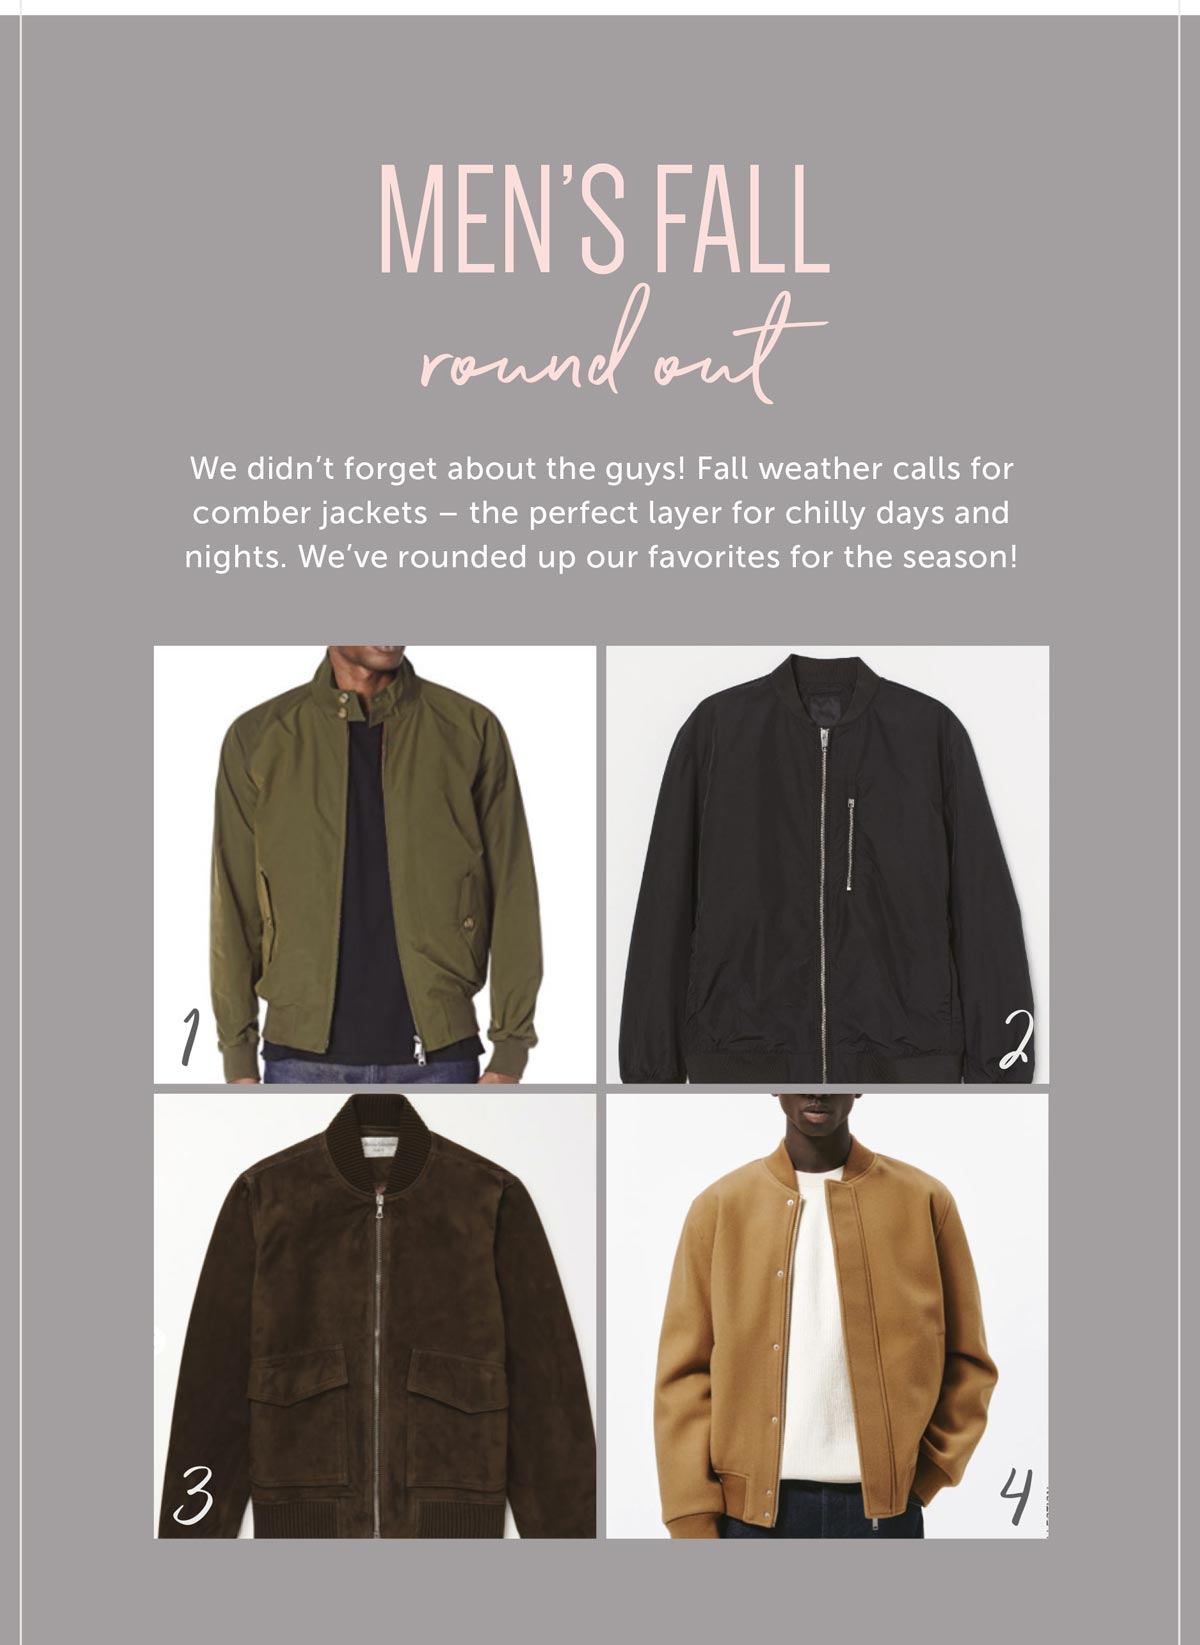 Men's Fall Round out We didn't forget about the guys! Fall weather calls for comber jackets- the perfect layer for chilly days and nights. We've rounded up our favorites for the season!